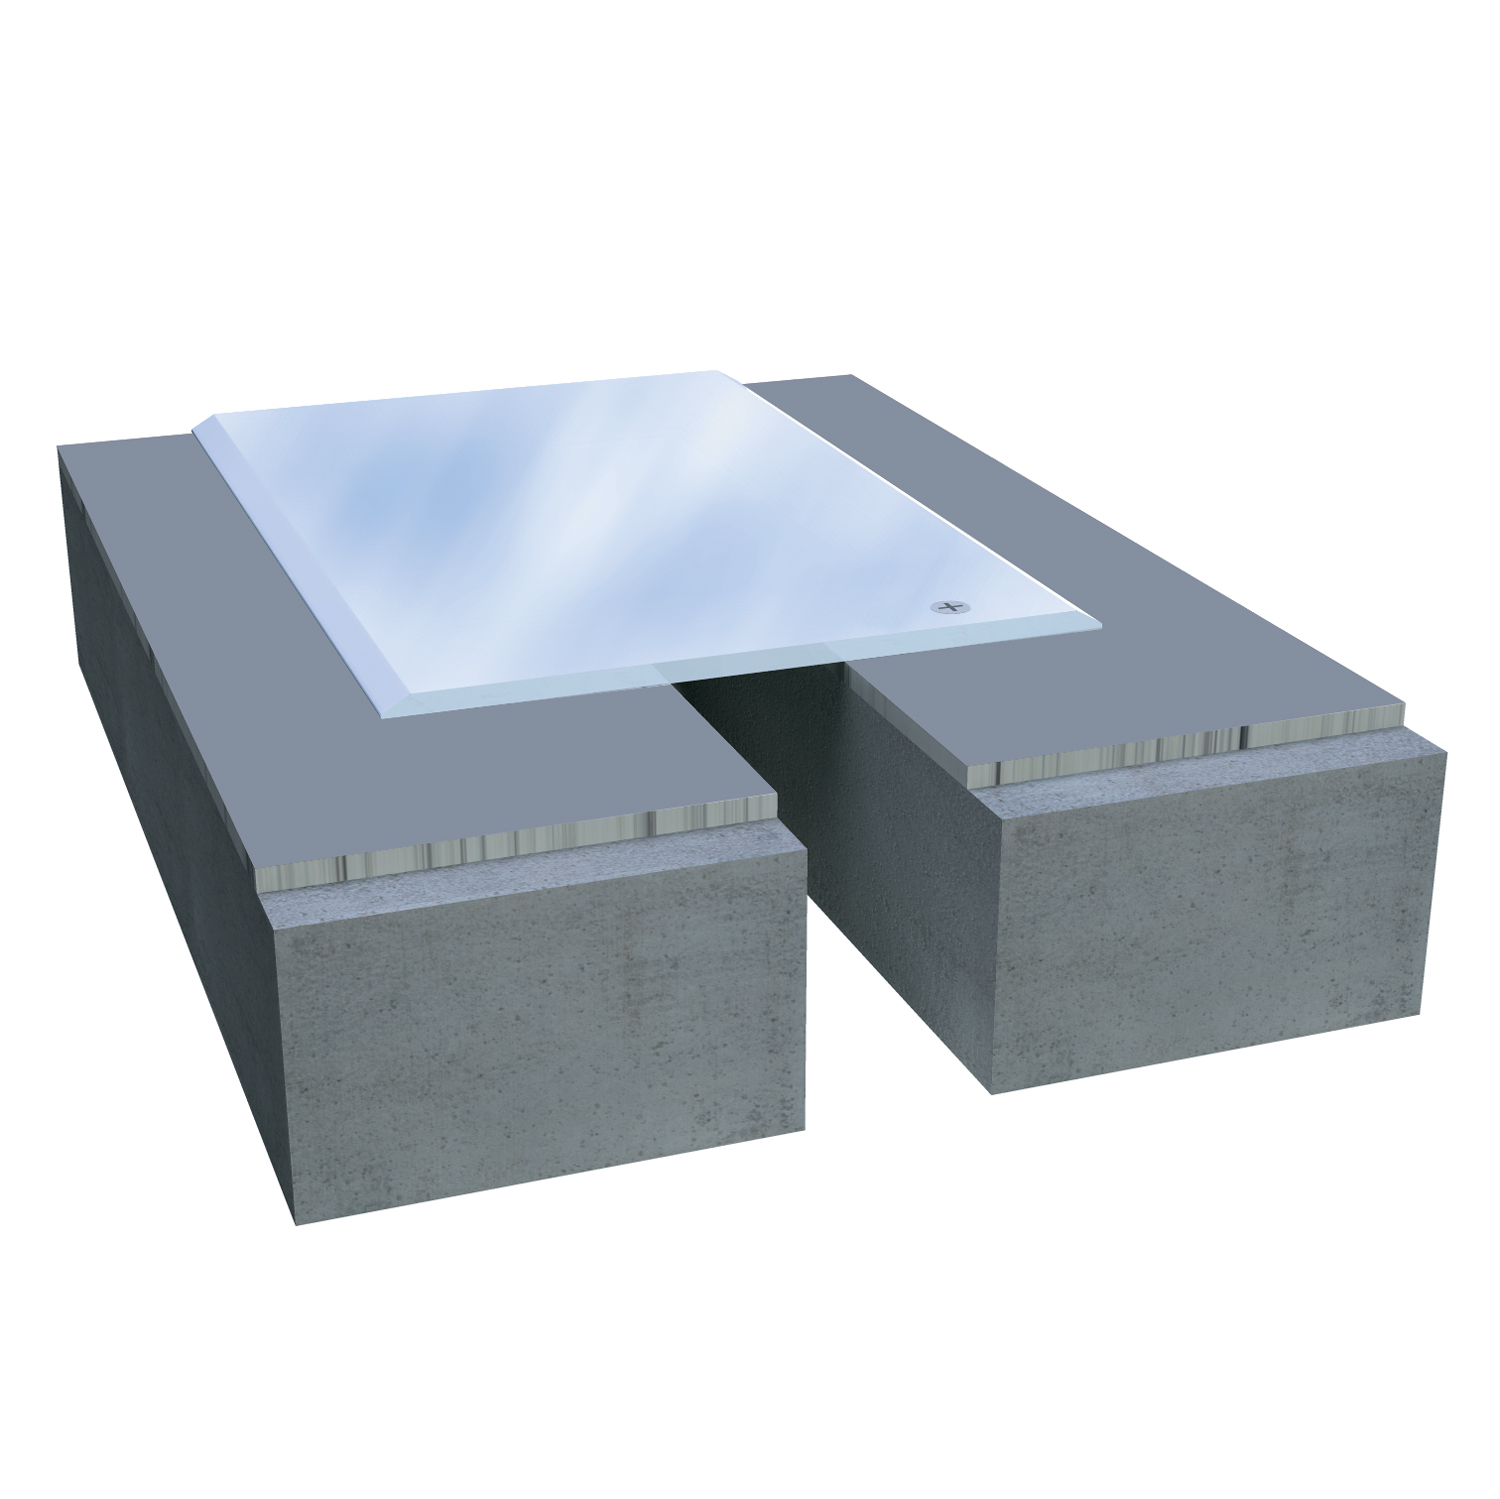 801 Series Floor System Expansion Joints